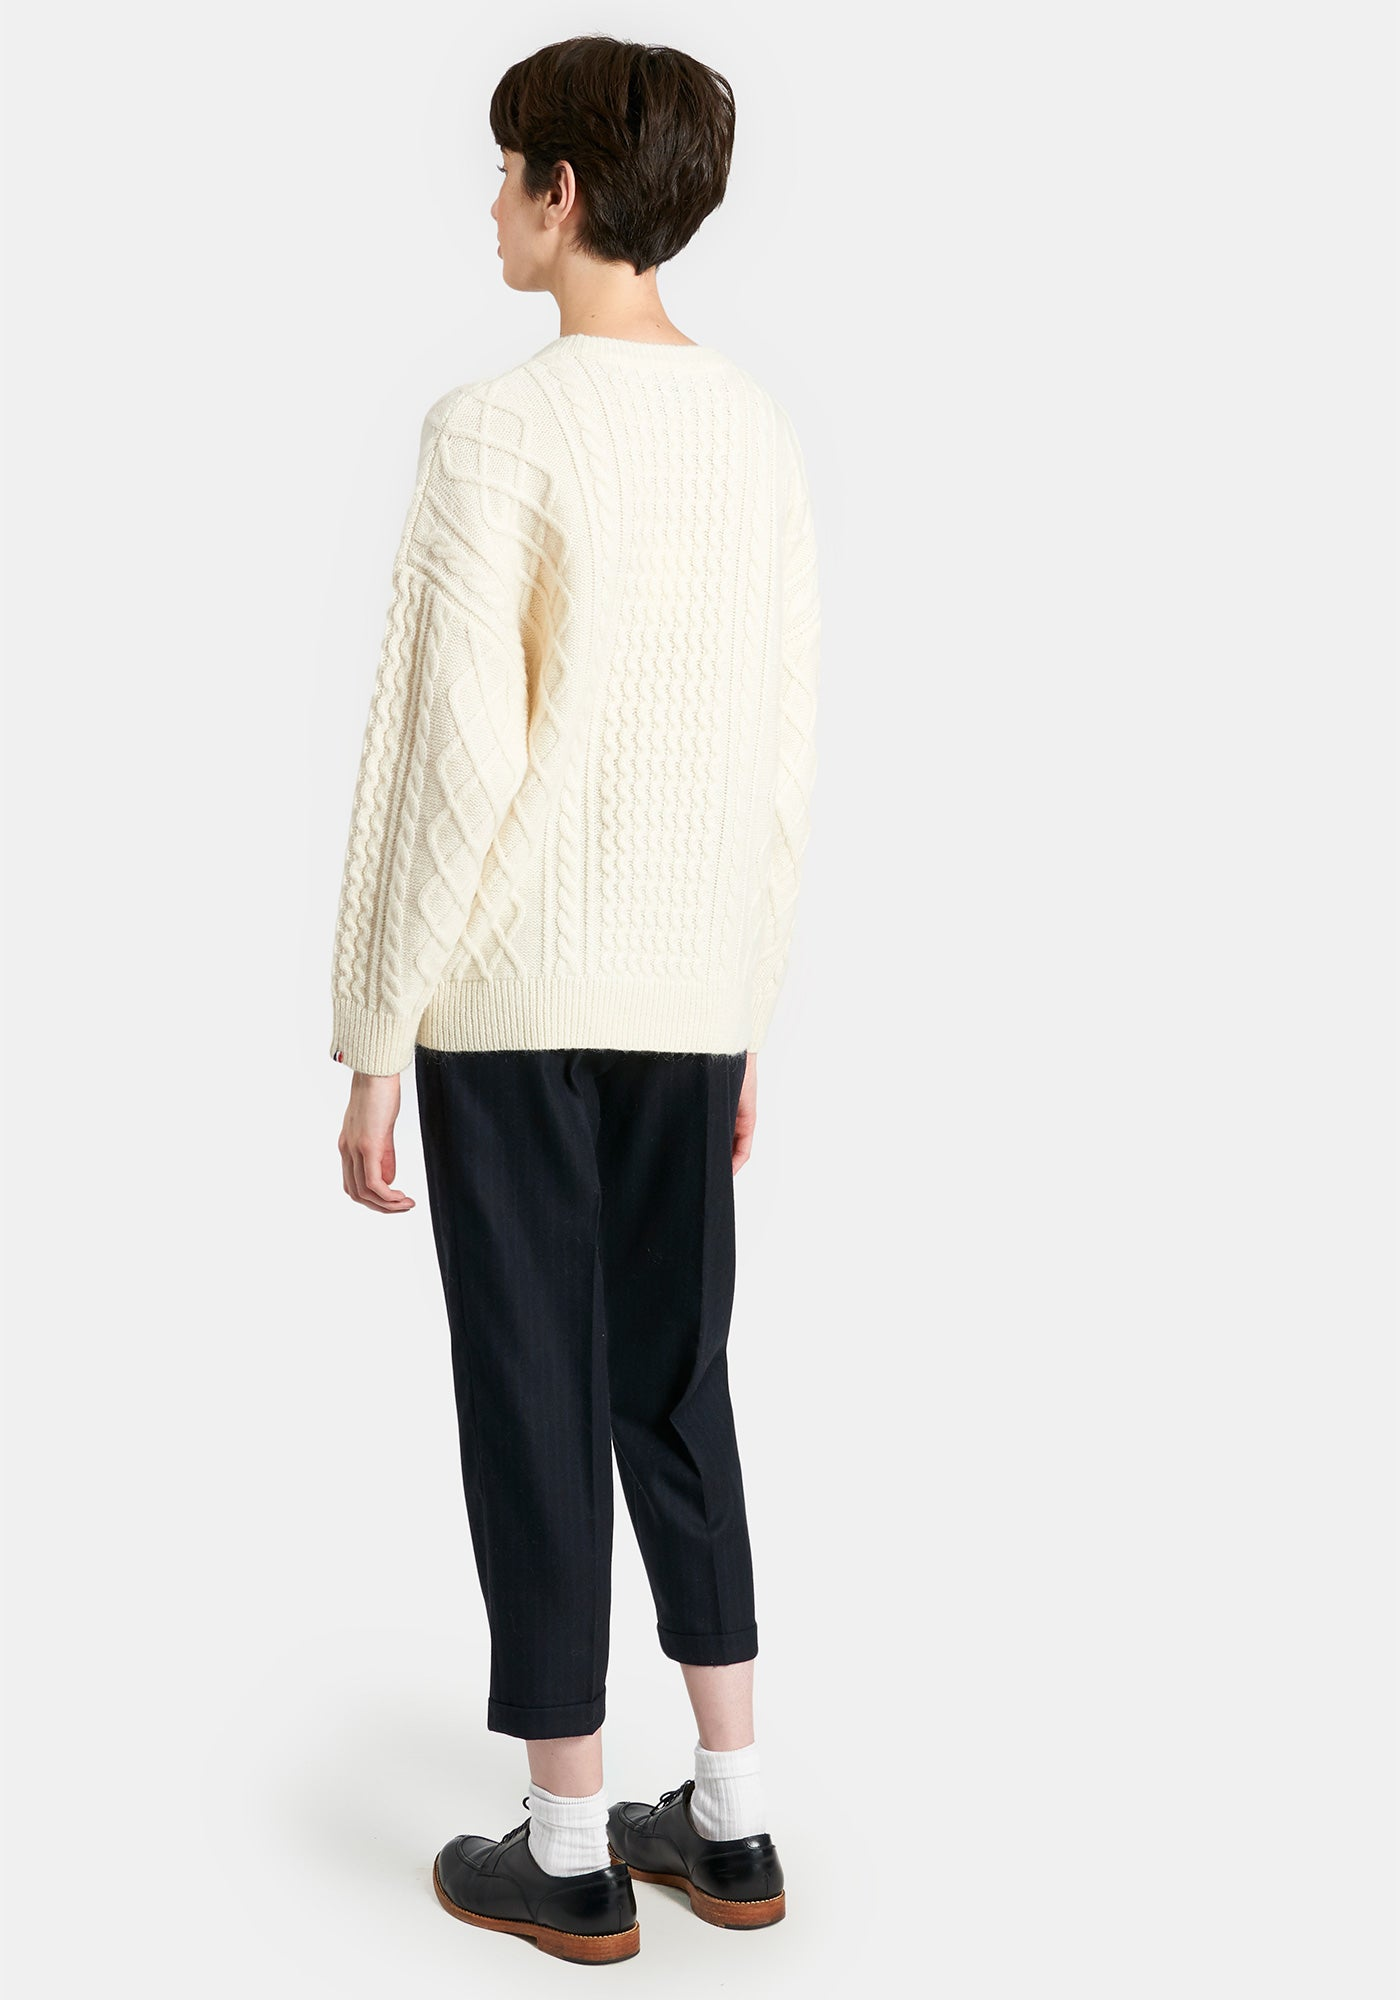 Charmant Pullover - Clare V. x DEMYLEE